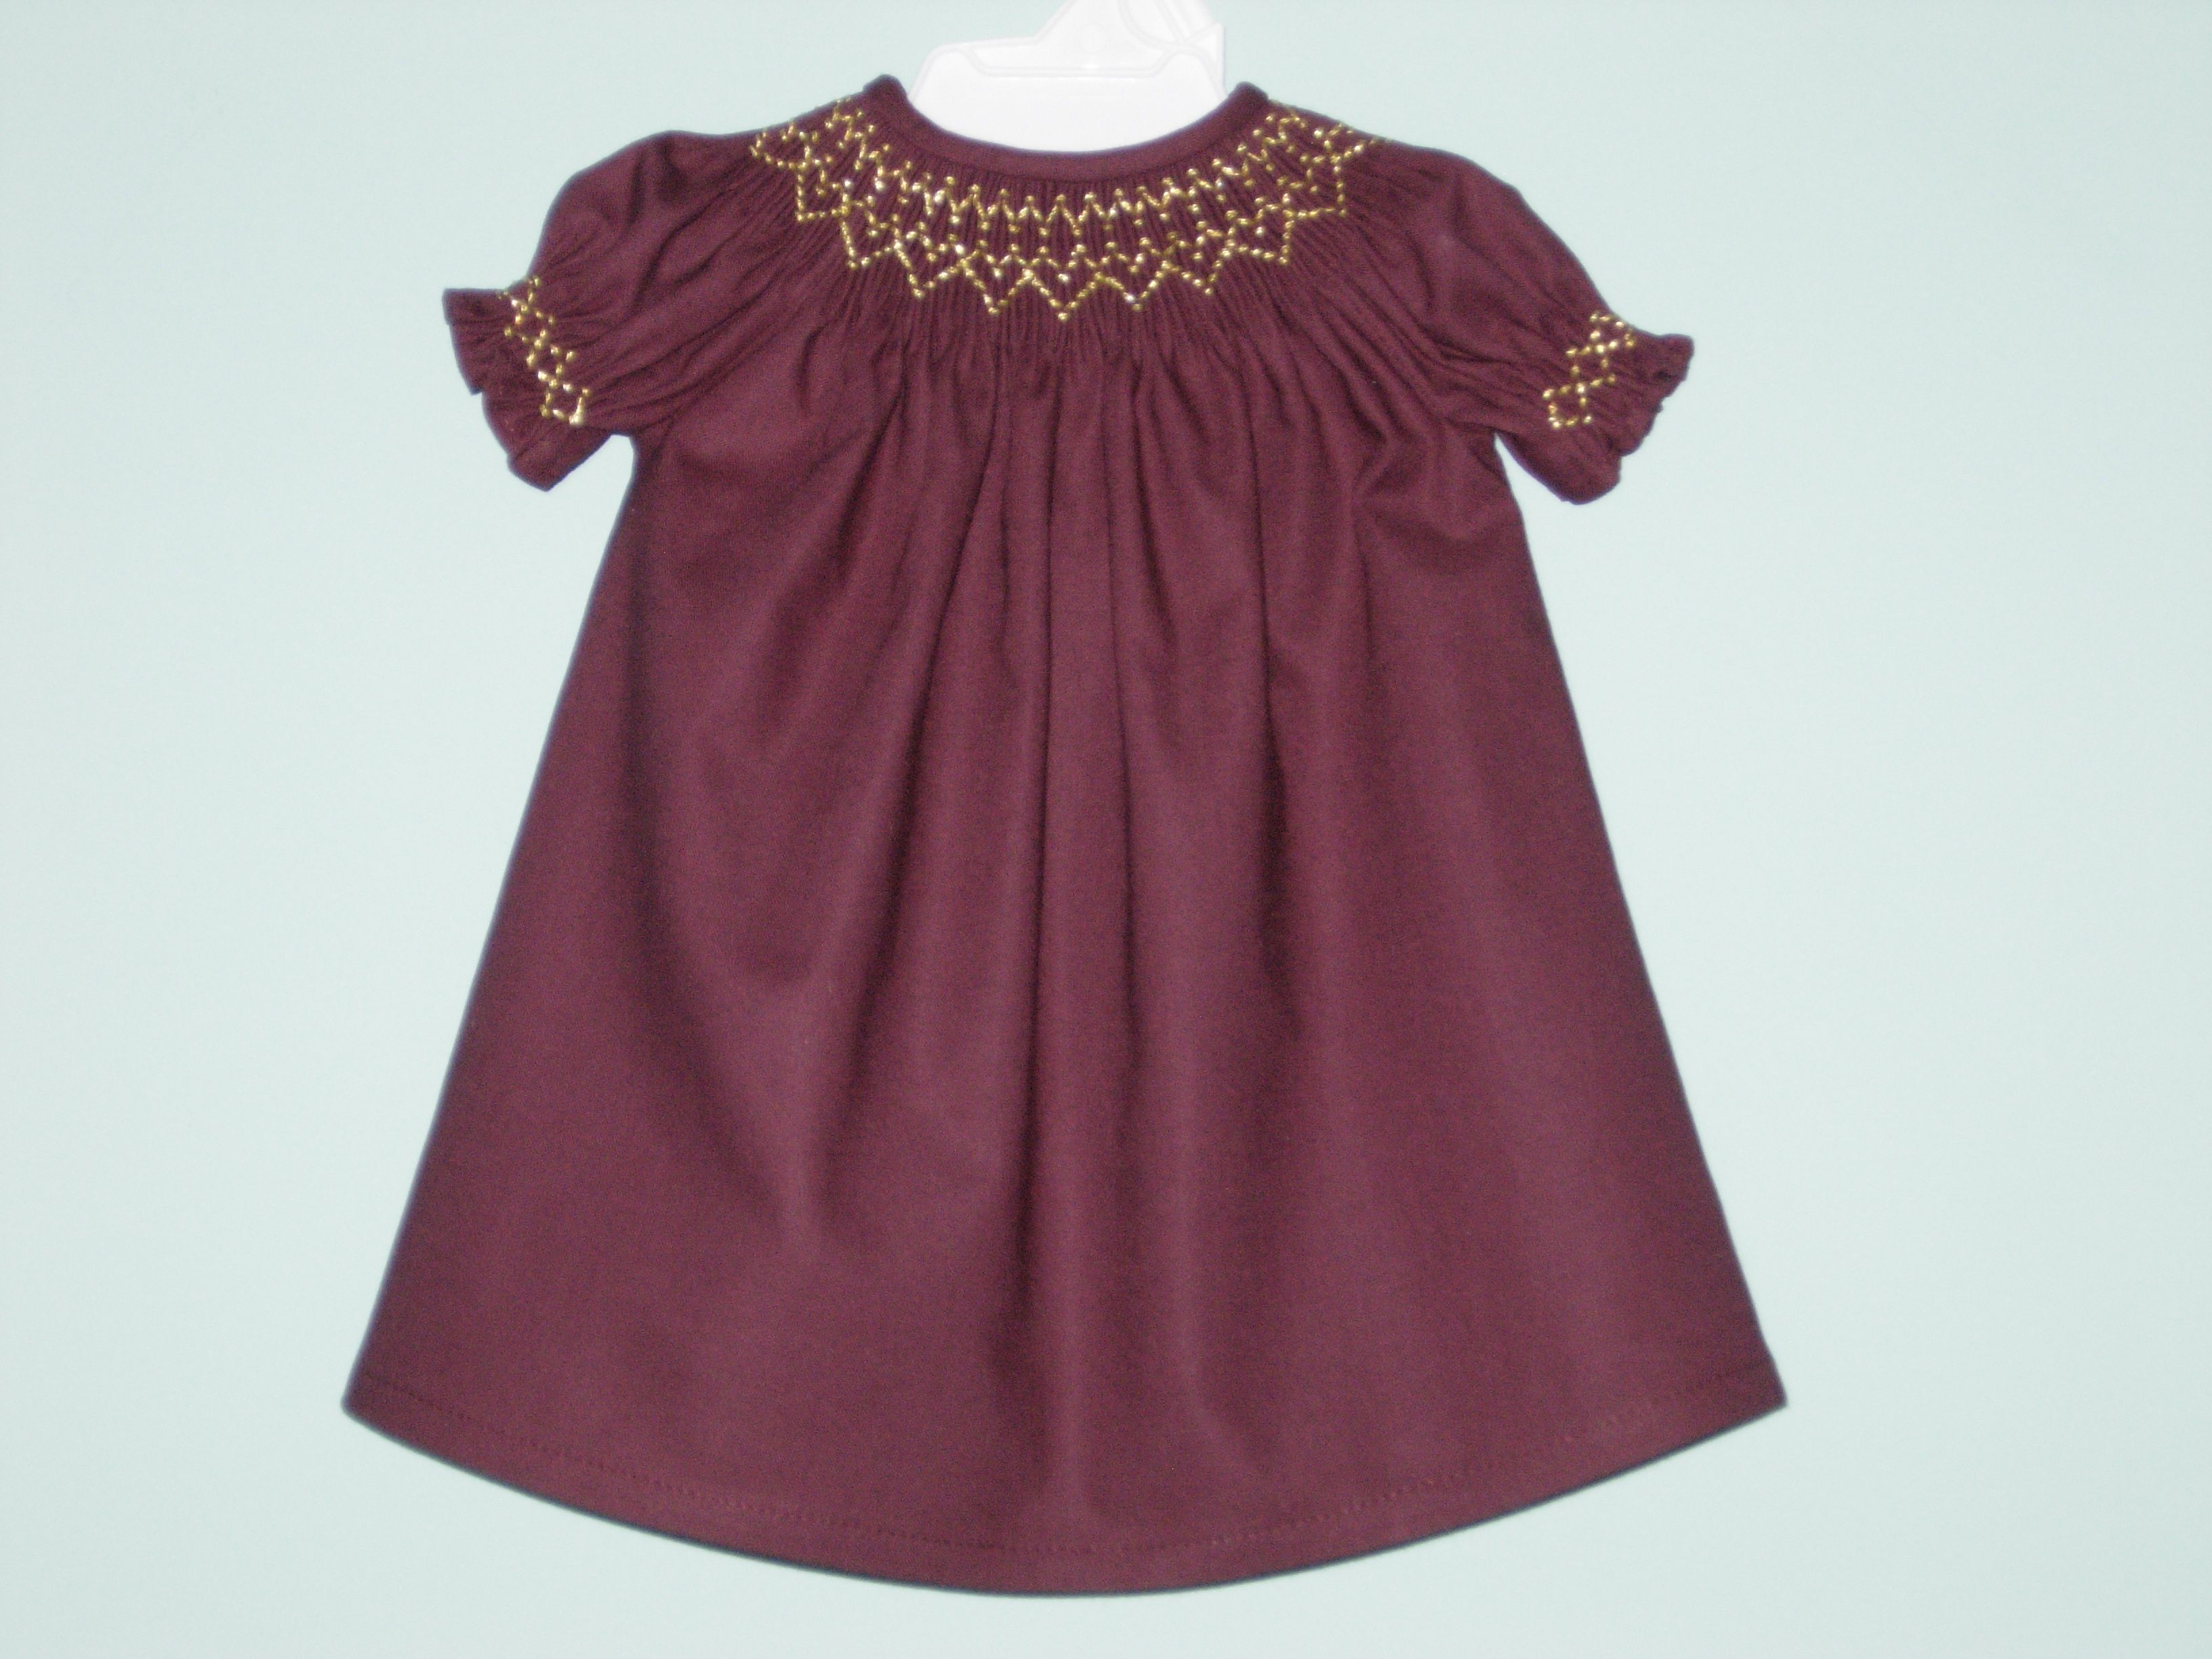 Gold metallic smocking decorates the neckline and sleeves of this hand smocked bishop dress for American Girl dolls.